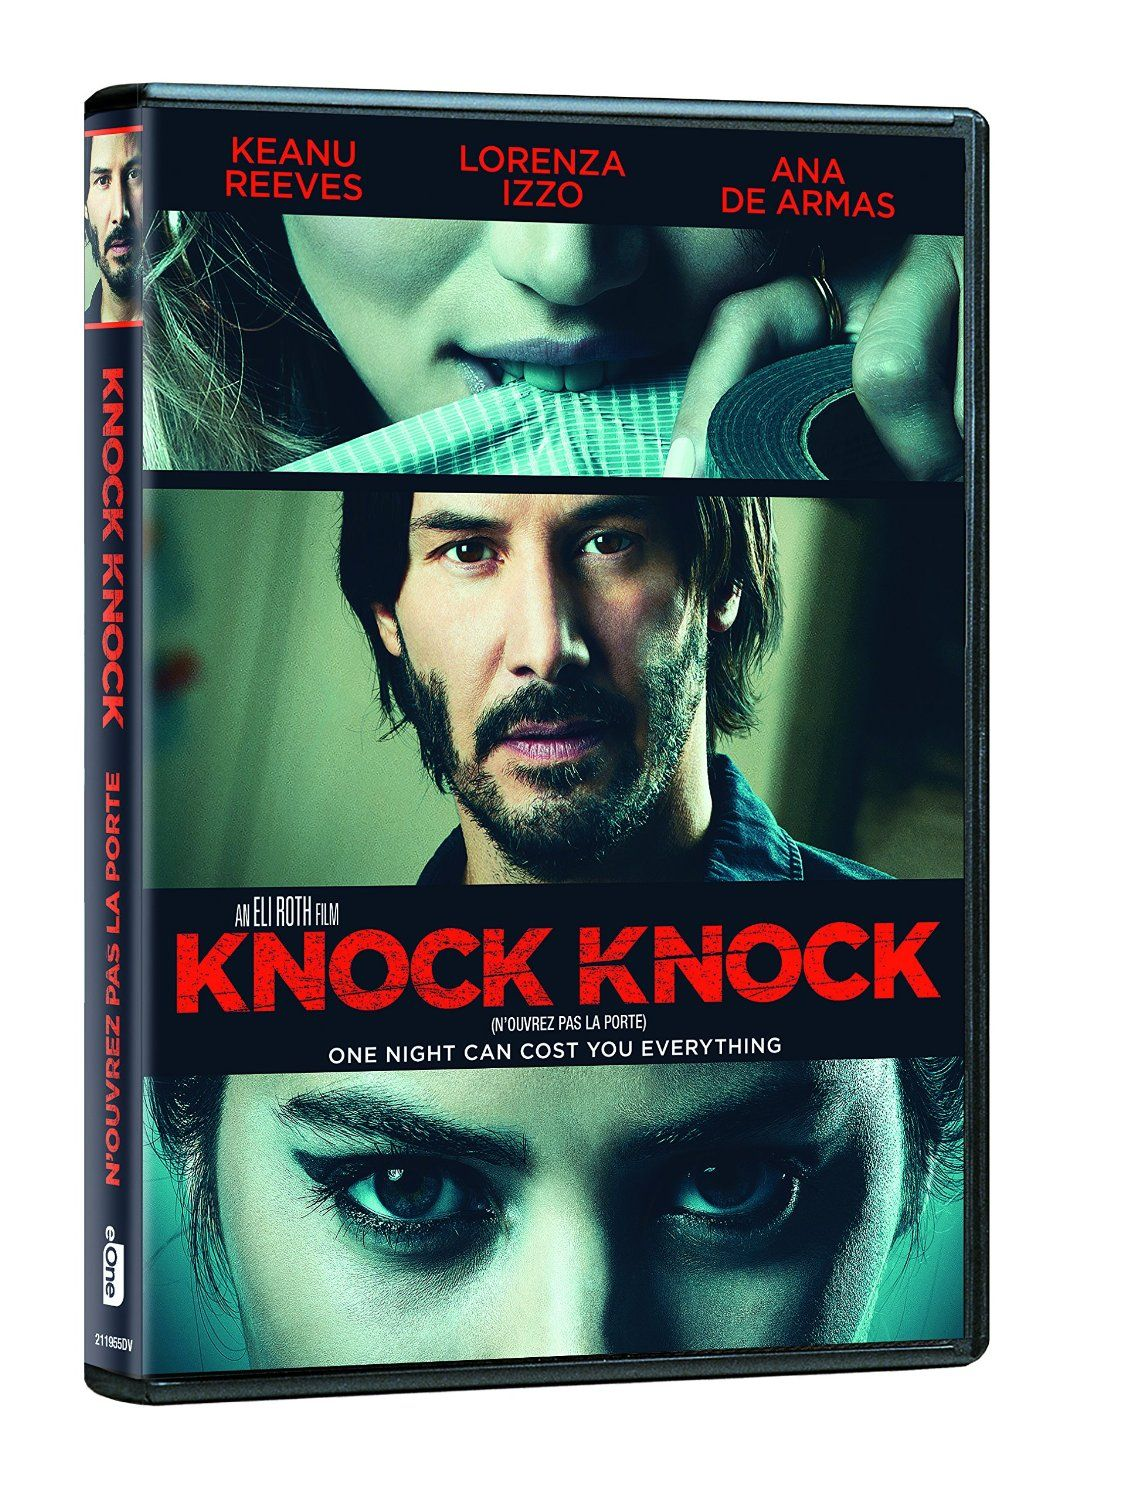 Knock Knock: Keanu Reeves,  A family man's kind gesture turns into a dangerous seduction and a deadly game of cat and mouse when he opens the door to two stranded